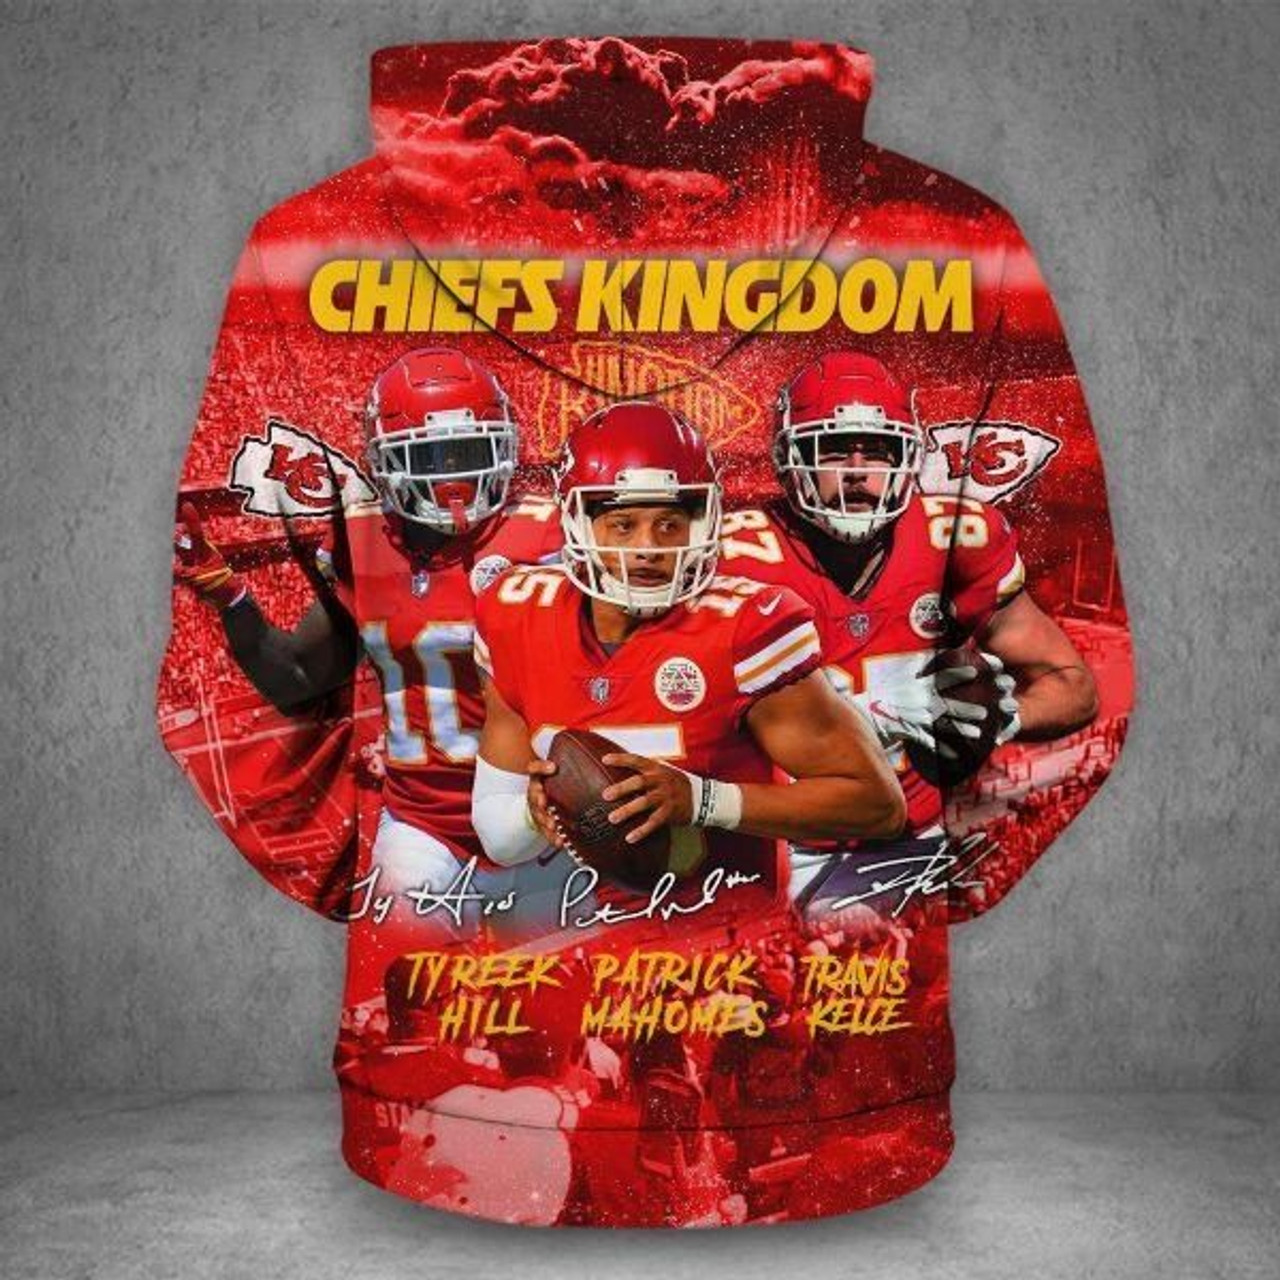 **(OFFICIAL-N.F.L.KANSAS-CITY-CHIEFS-FASHION-PULLOVER-TEAM-HOODIES & PATRICK-MAHOMES-NO.15/CUSTOM-3D-GRAPHIC-PRINTED-DETAILED-DOUBLE-SIDED-DESIGN/CLASSIC-OFFICIAL-CHIEFS-TEAM-LOGOS & OFFICIAL-CHIEFS-TEAM-COLORS/WARM-PREMIUM-CHIEFS-TEAM-HOODIES)**